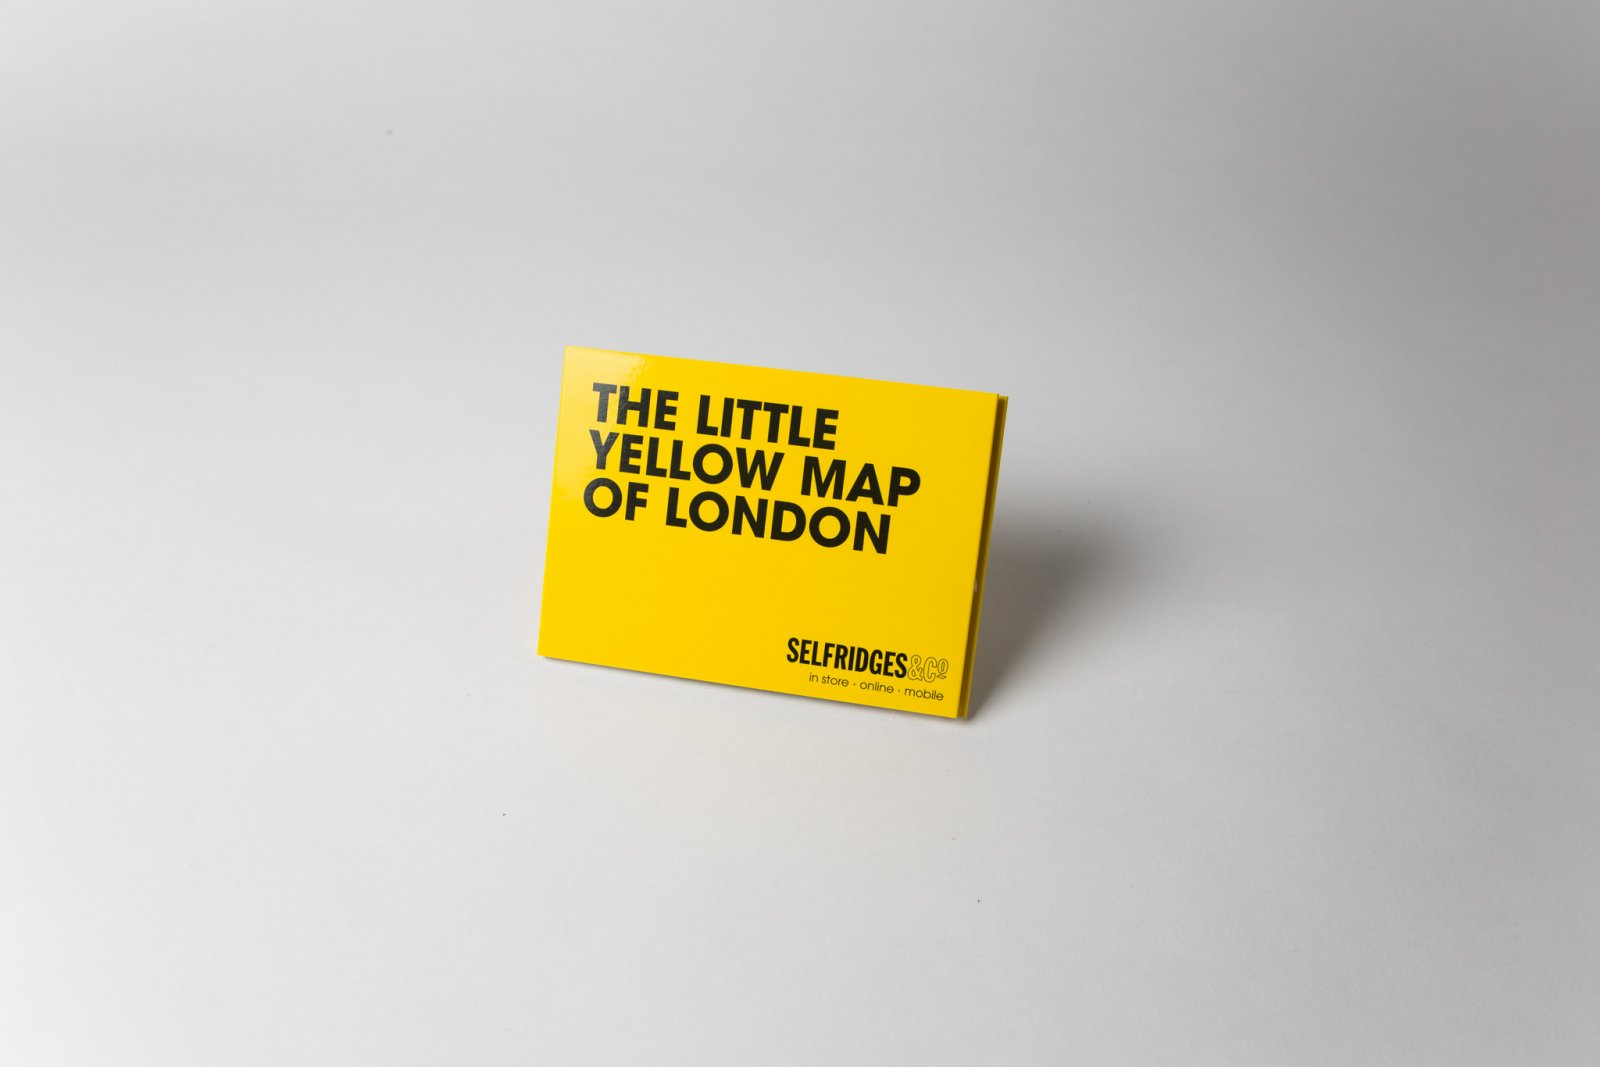 selfridges loyalty card